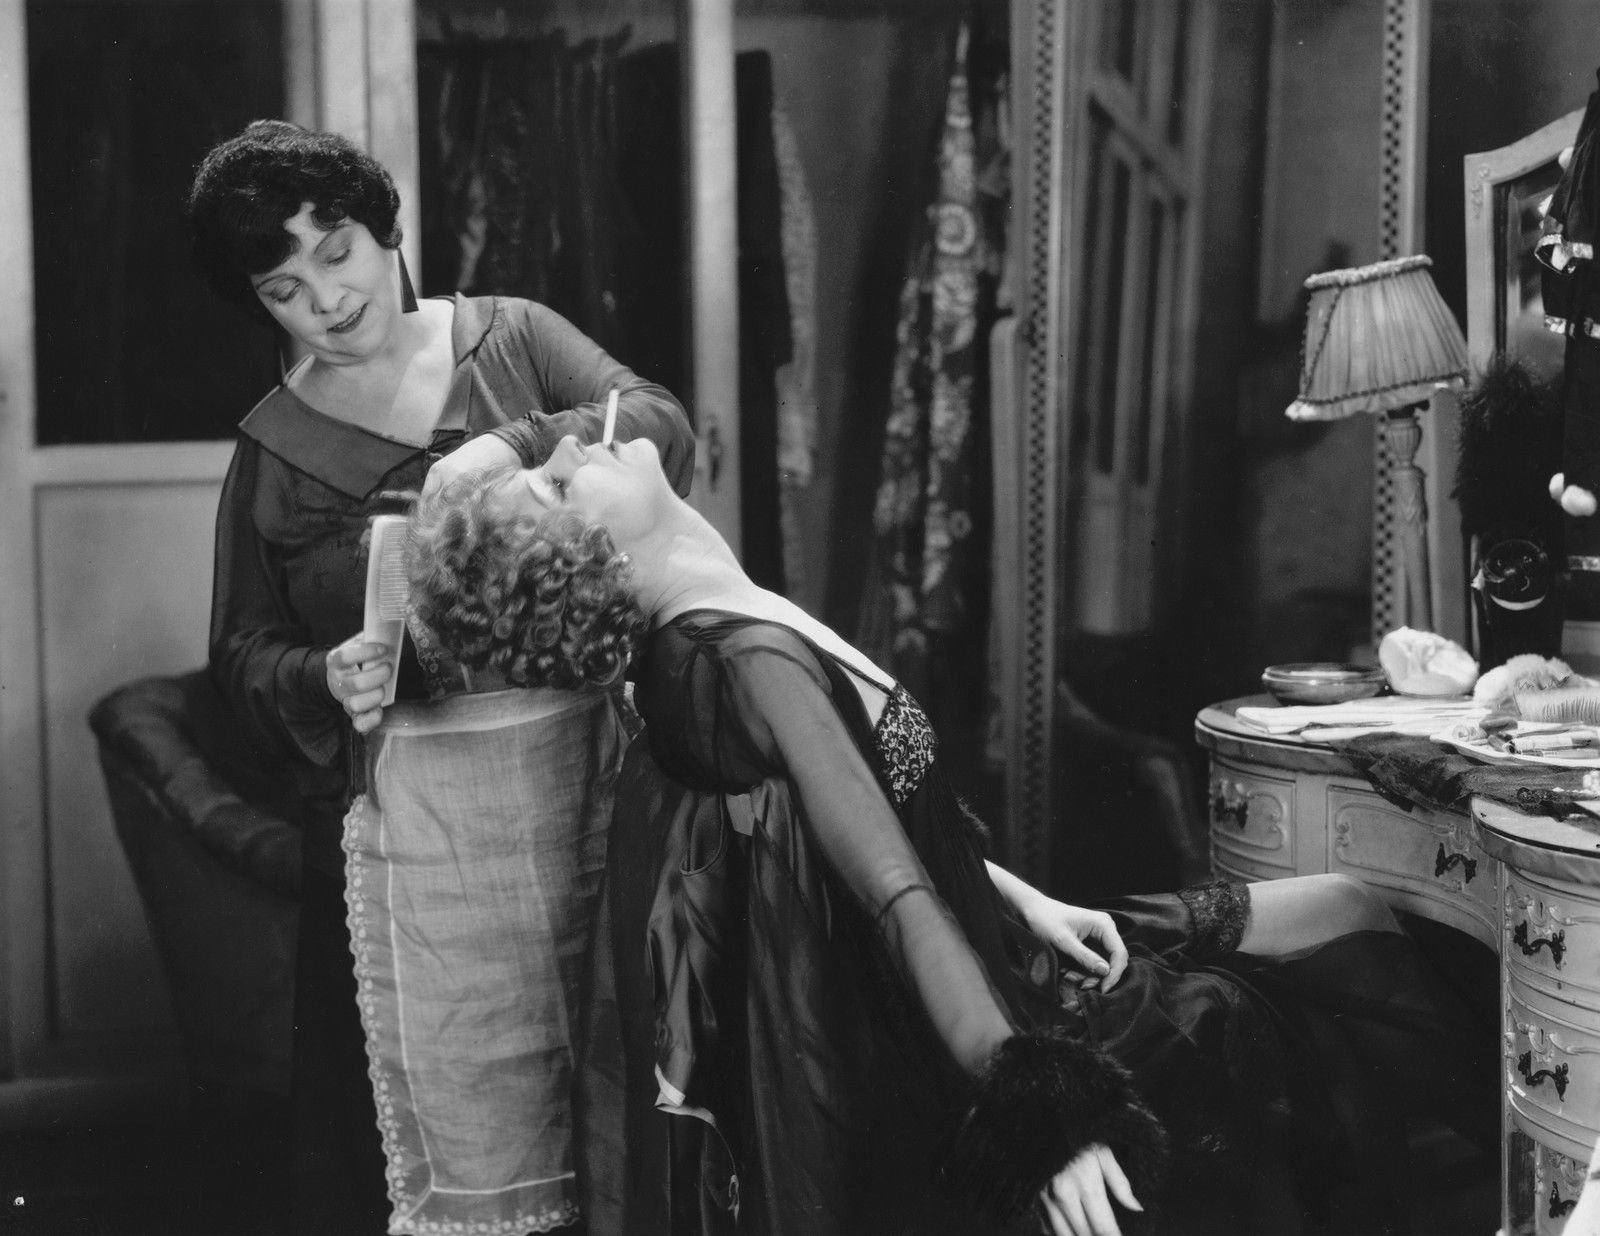 Hannah Jones (standing) and Isabel Jeans in Downhill (dir. by Alfred Hitchcock, 1927)